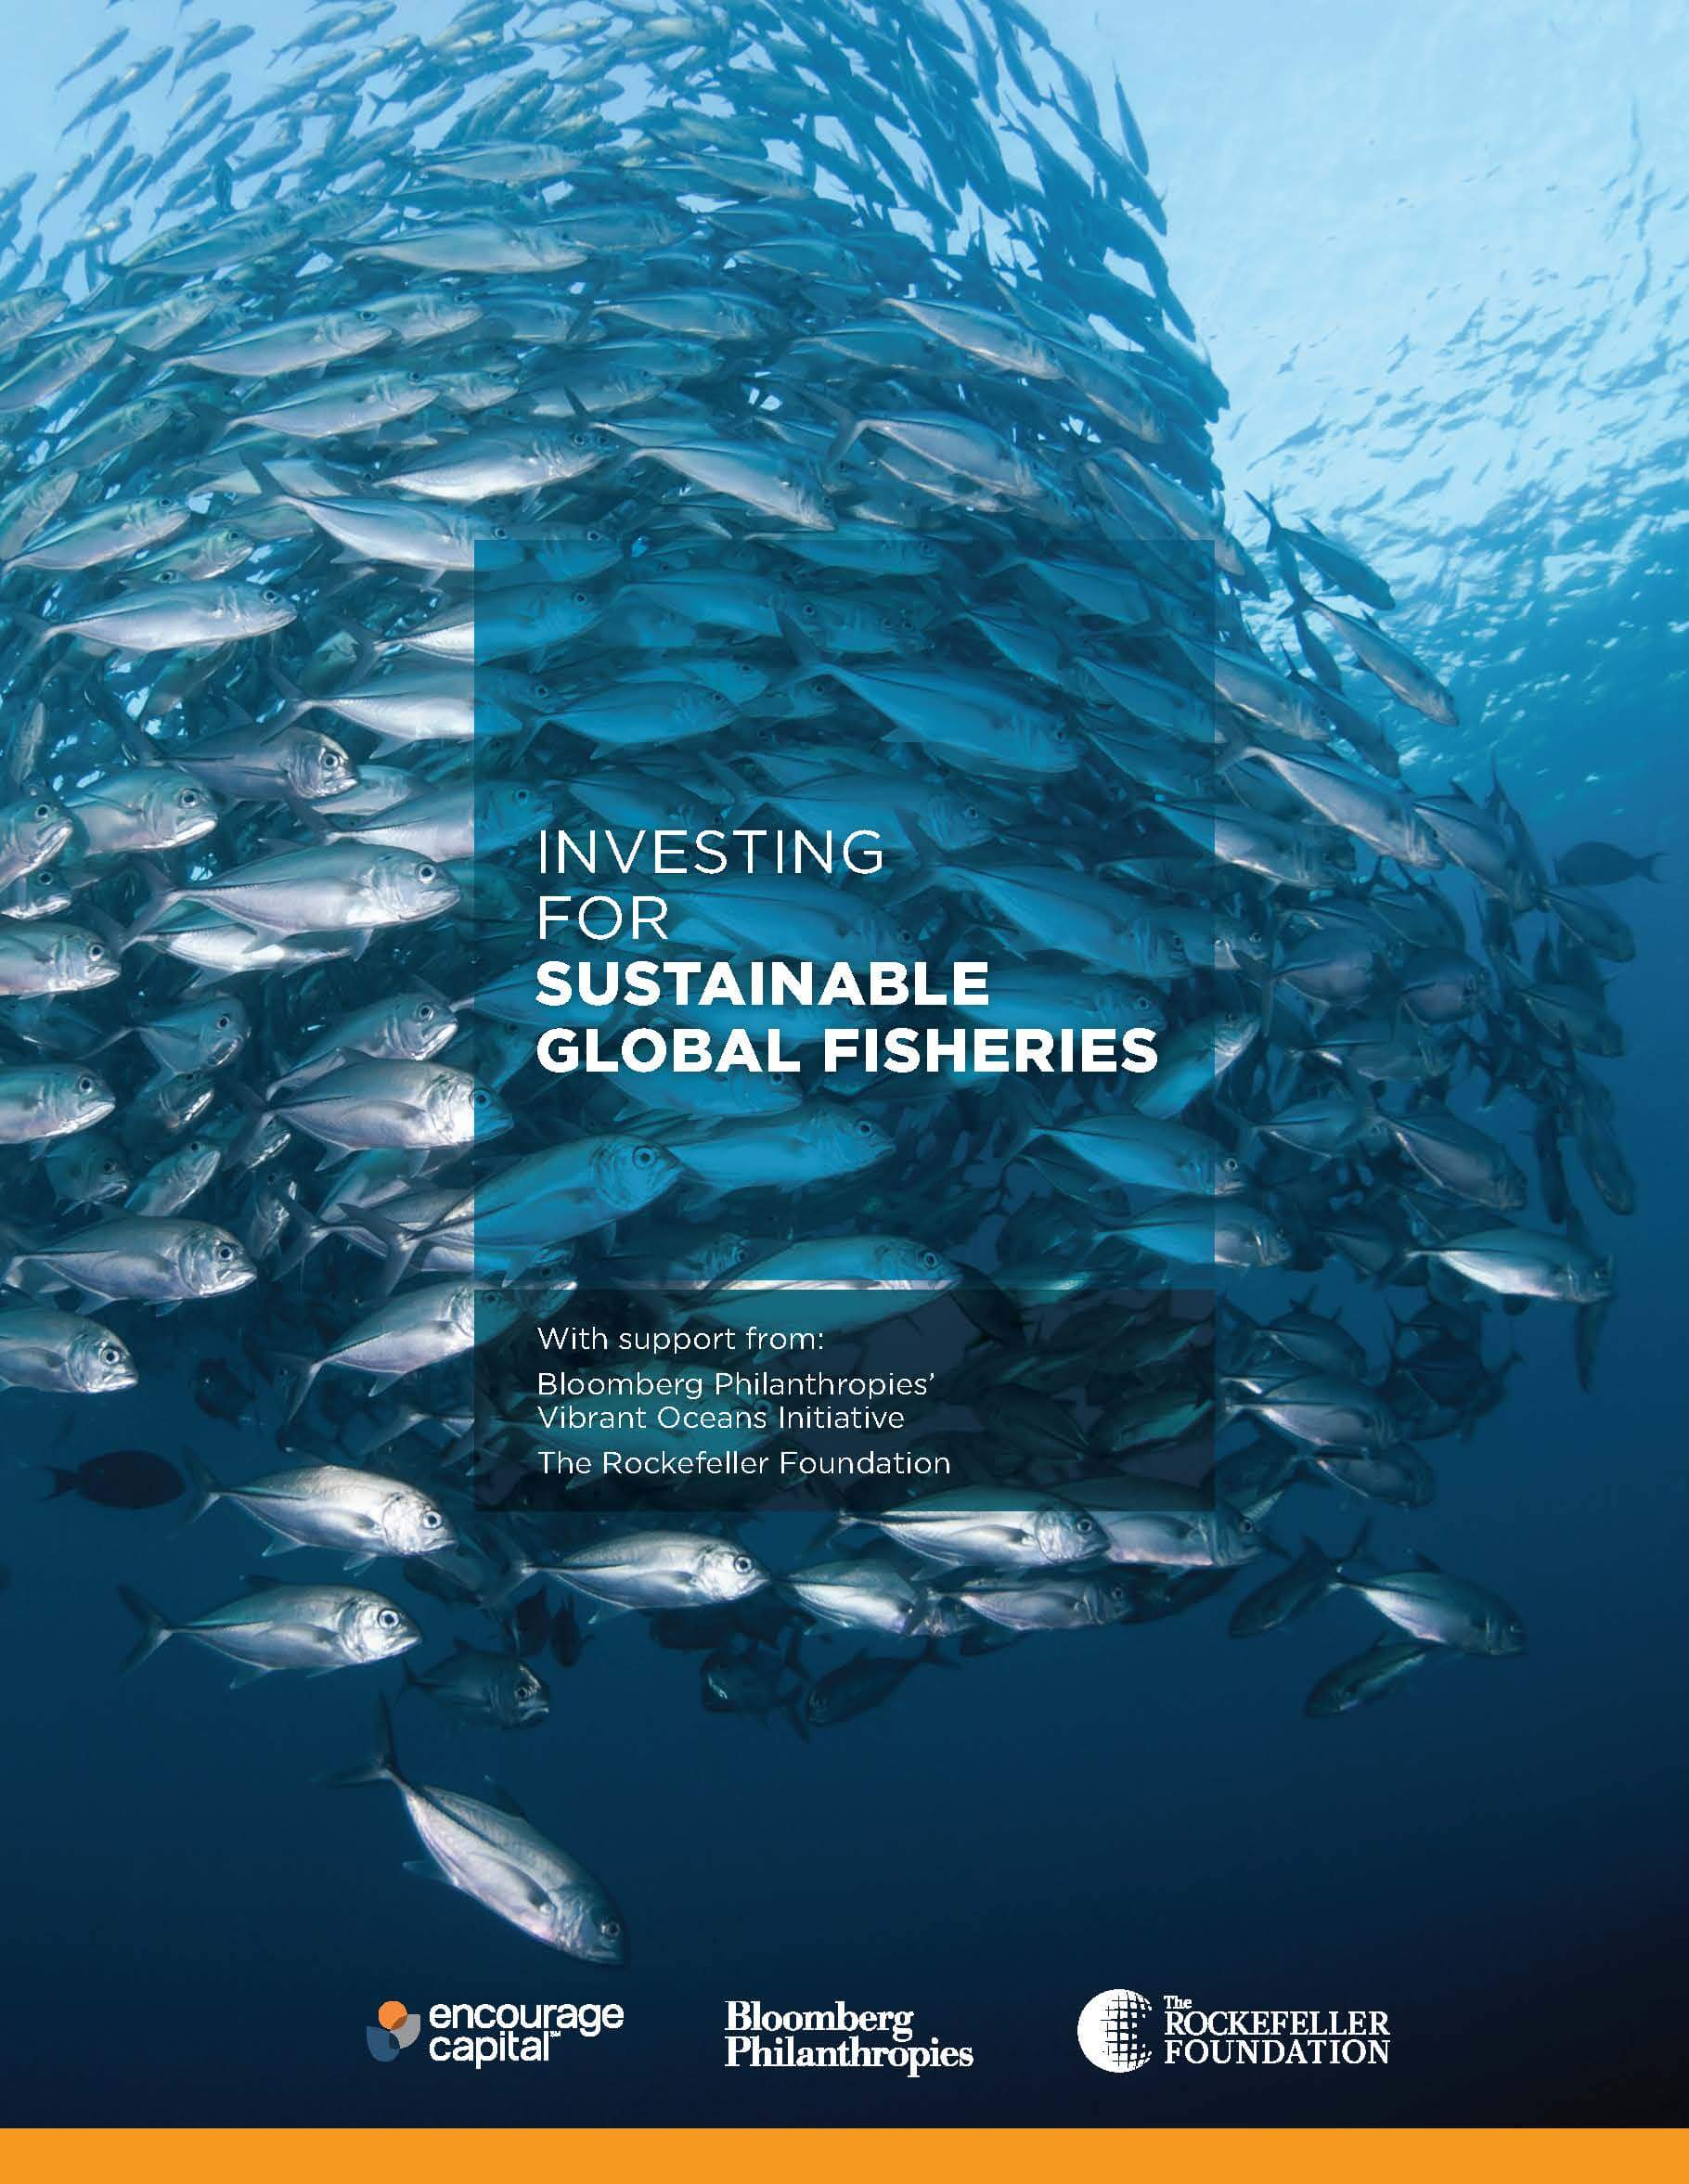 Investing for Sustainable Global Fisheries